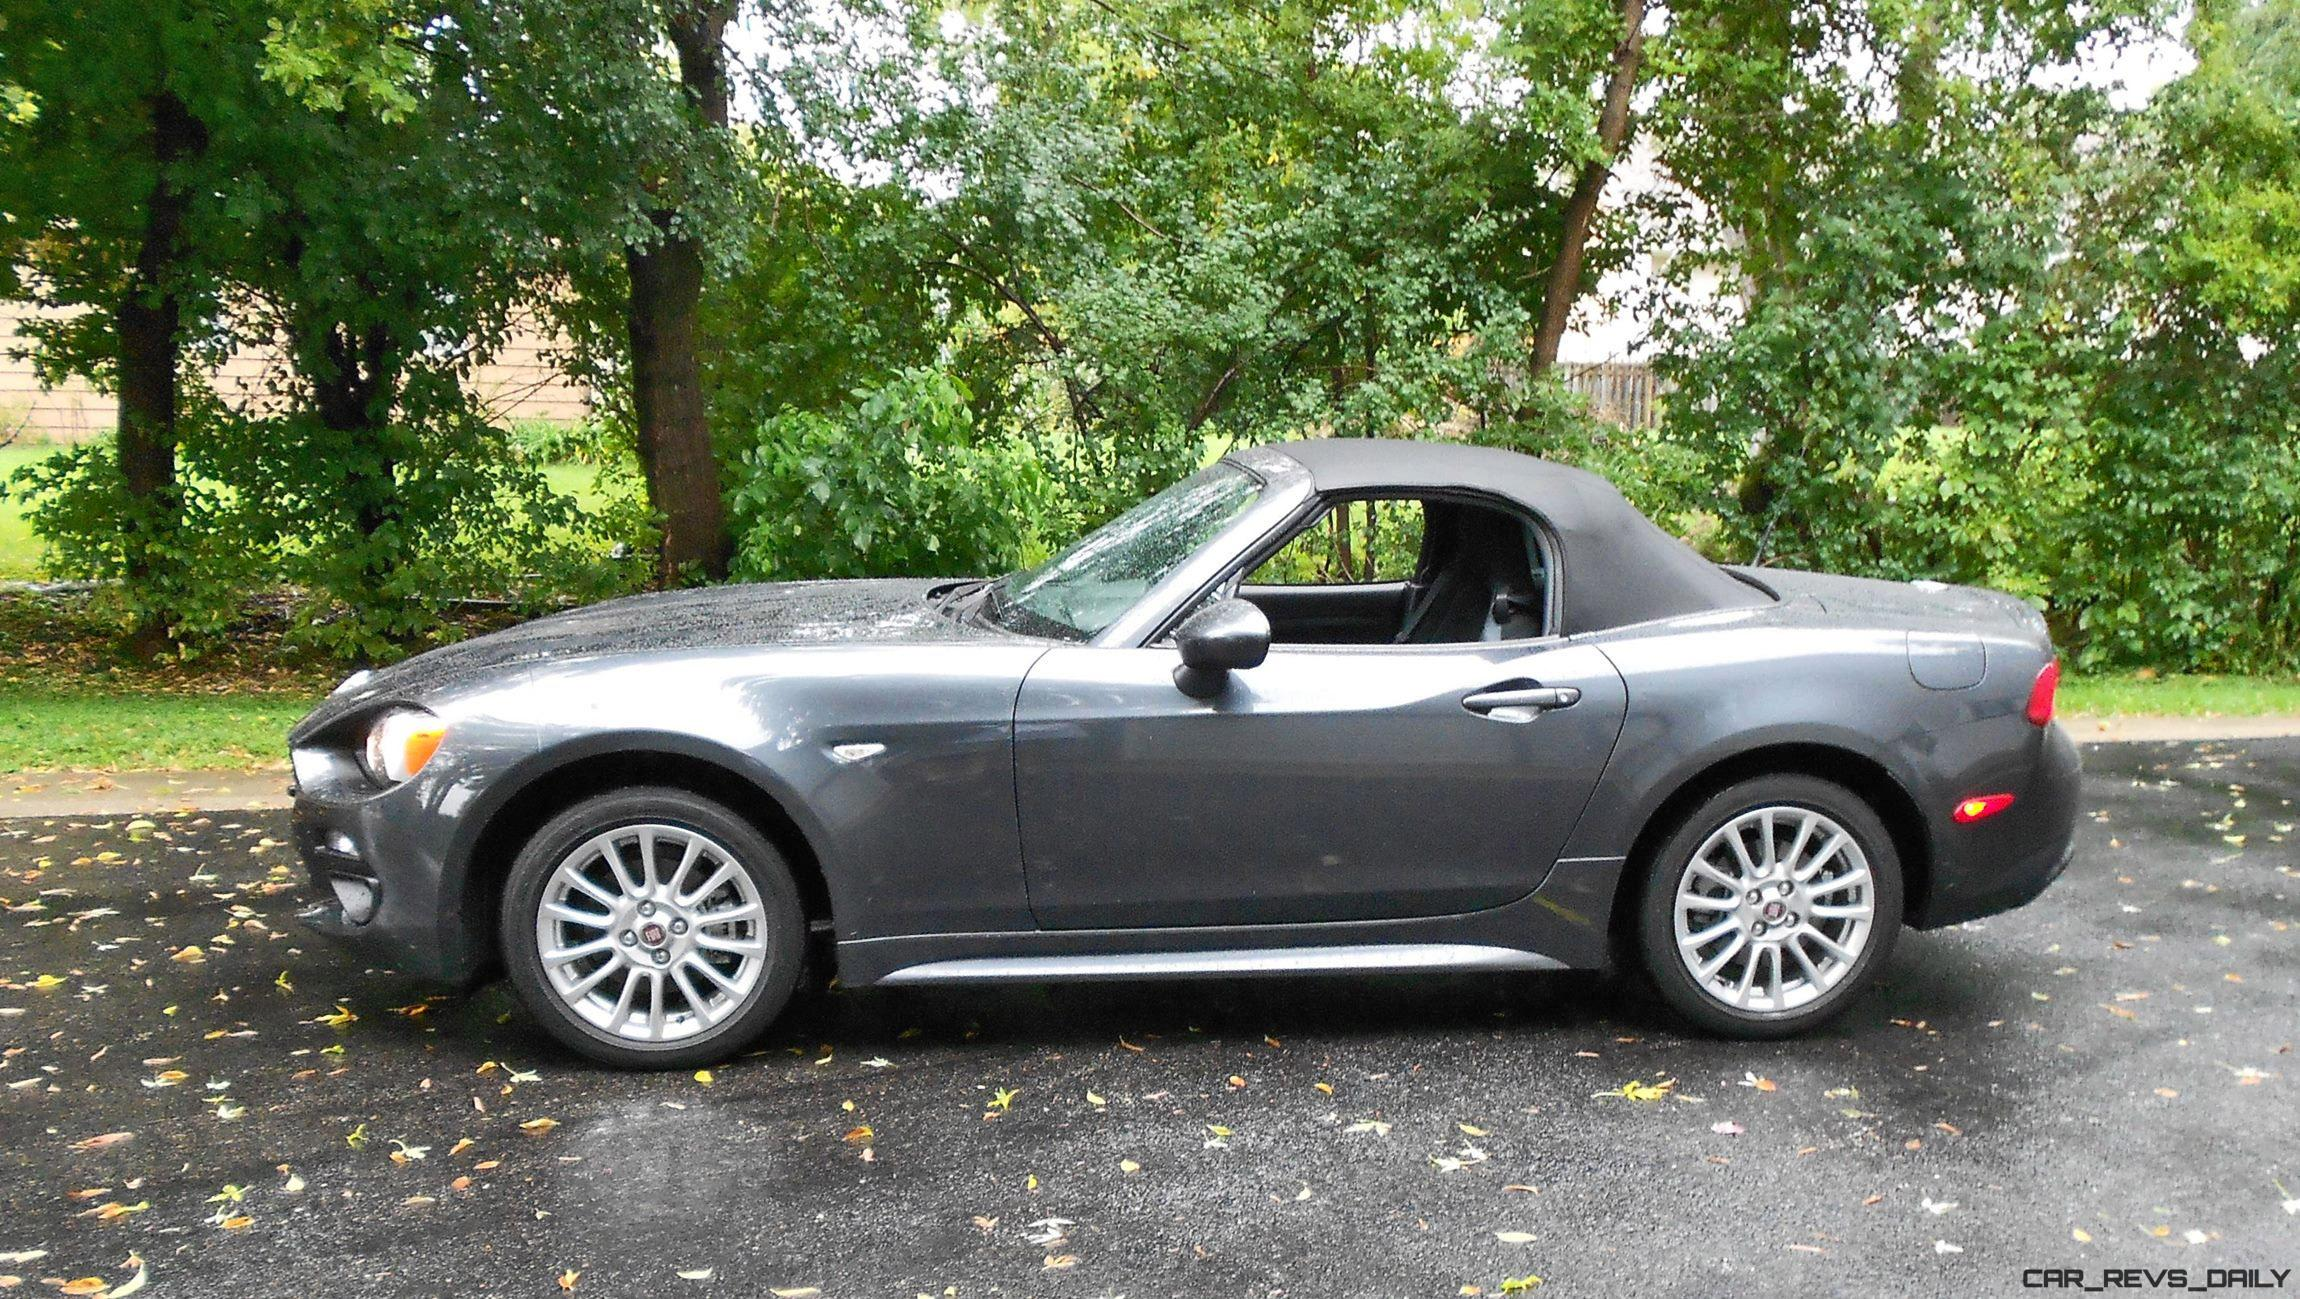 2017 fiat 124 spider road test review by ken hawkeye glassman. Black Bedroom Furniture Sets. Home Design Ideas